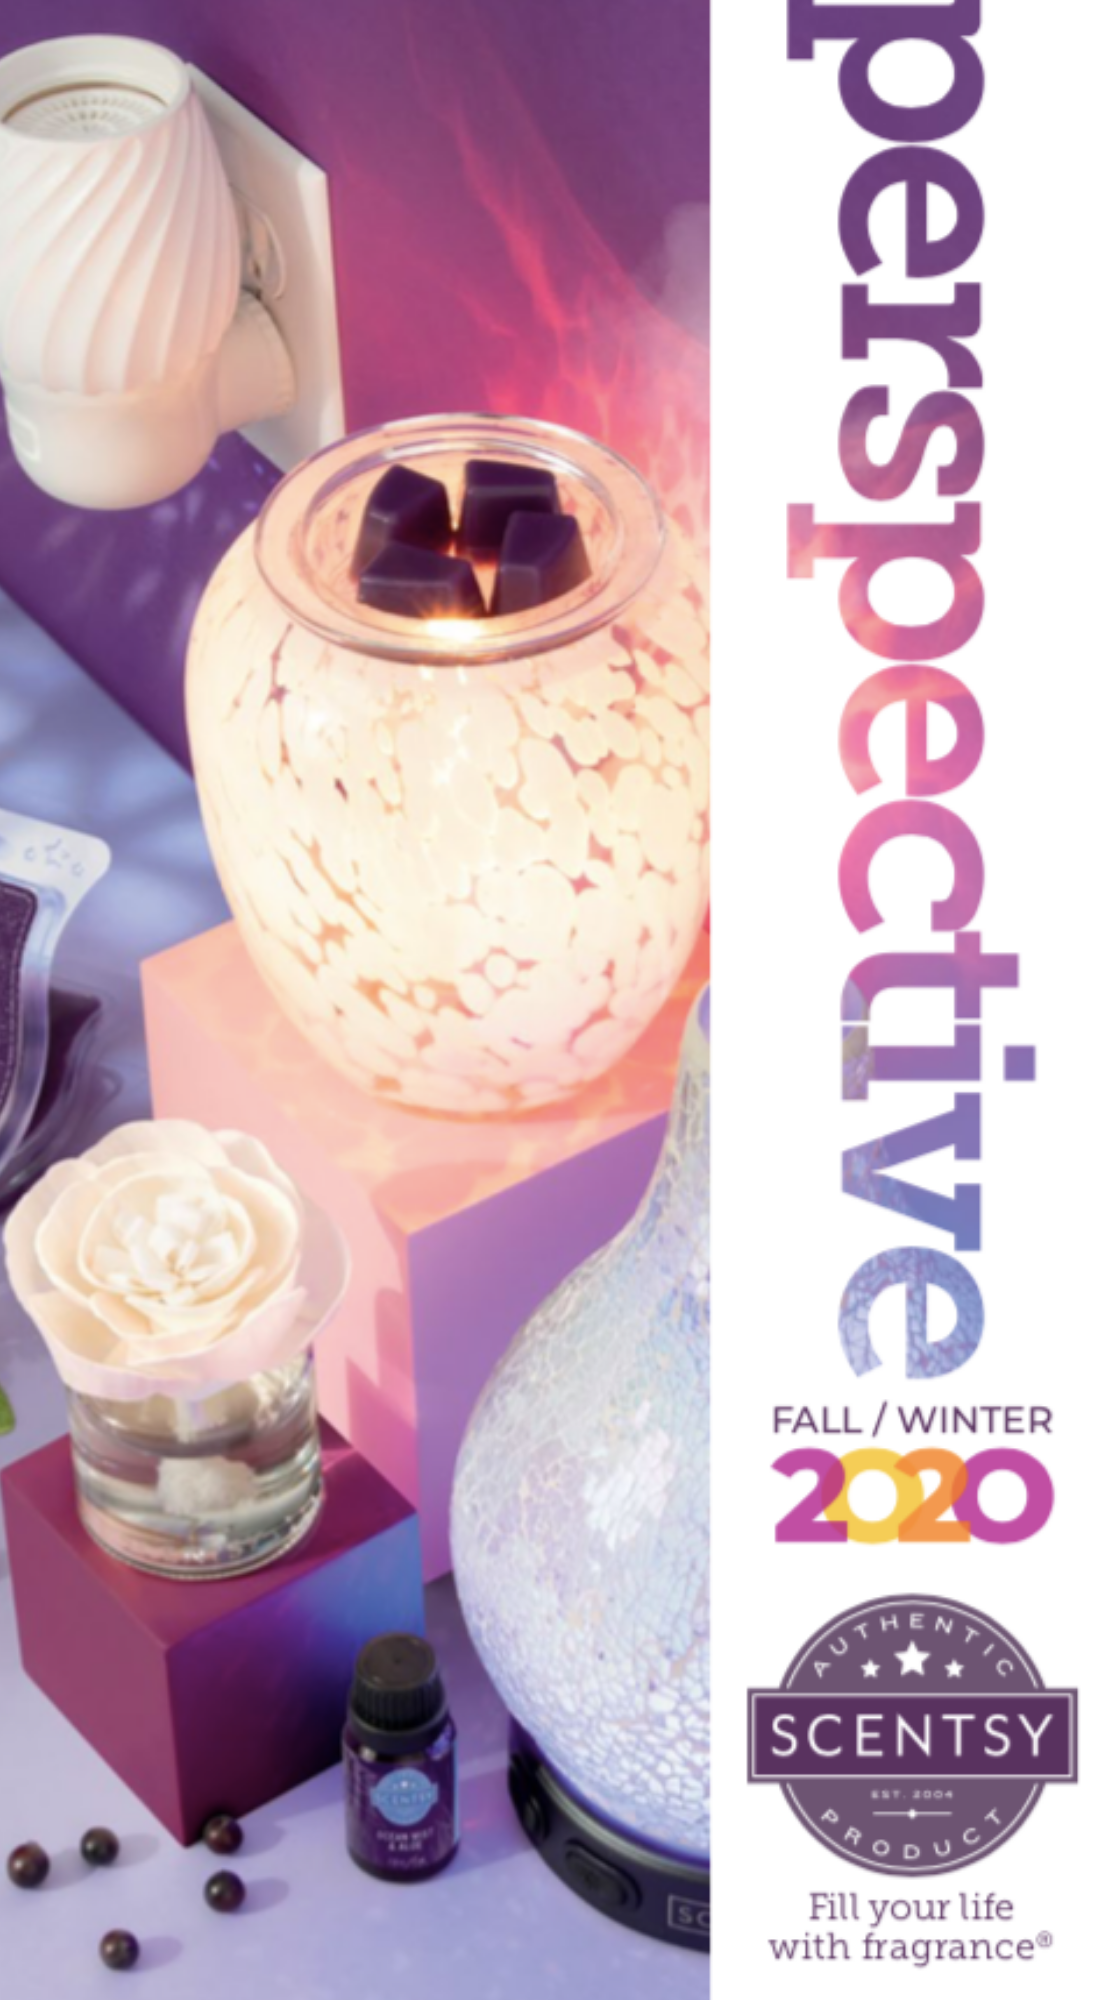 Scentsy Fall 2020 Catalog